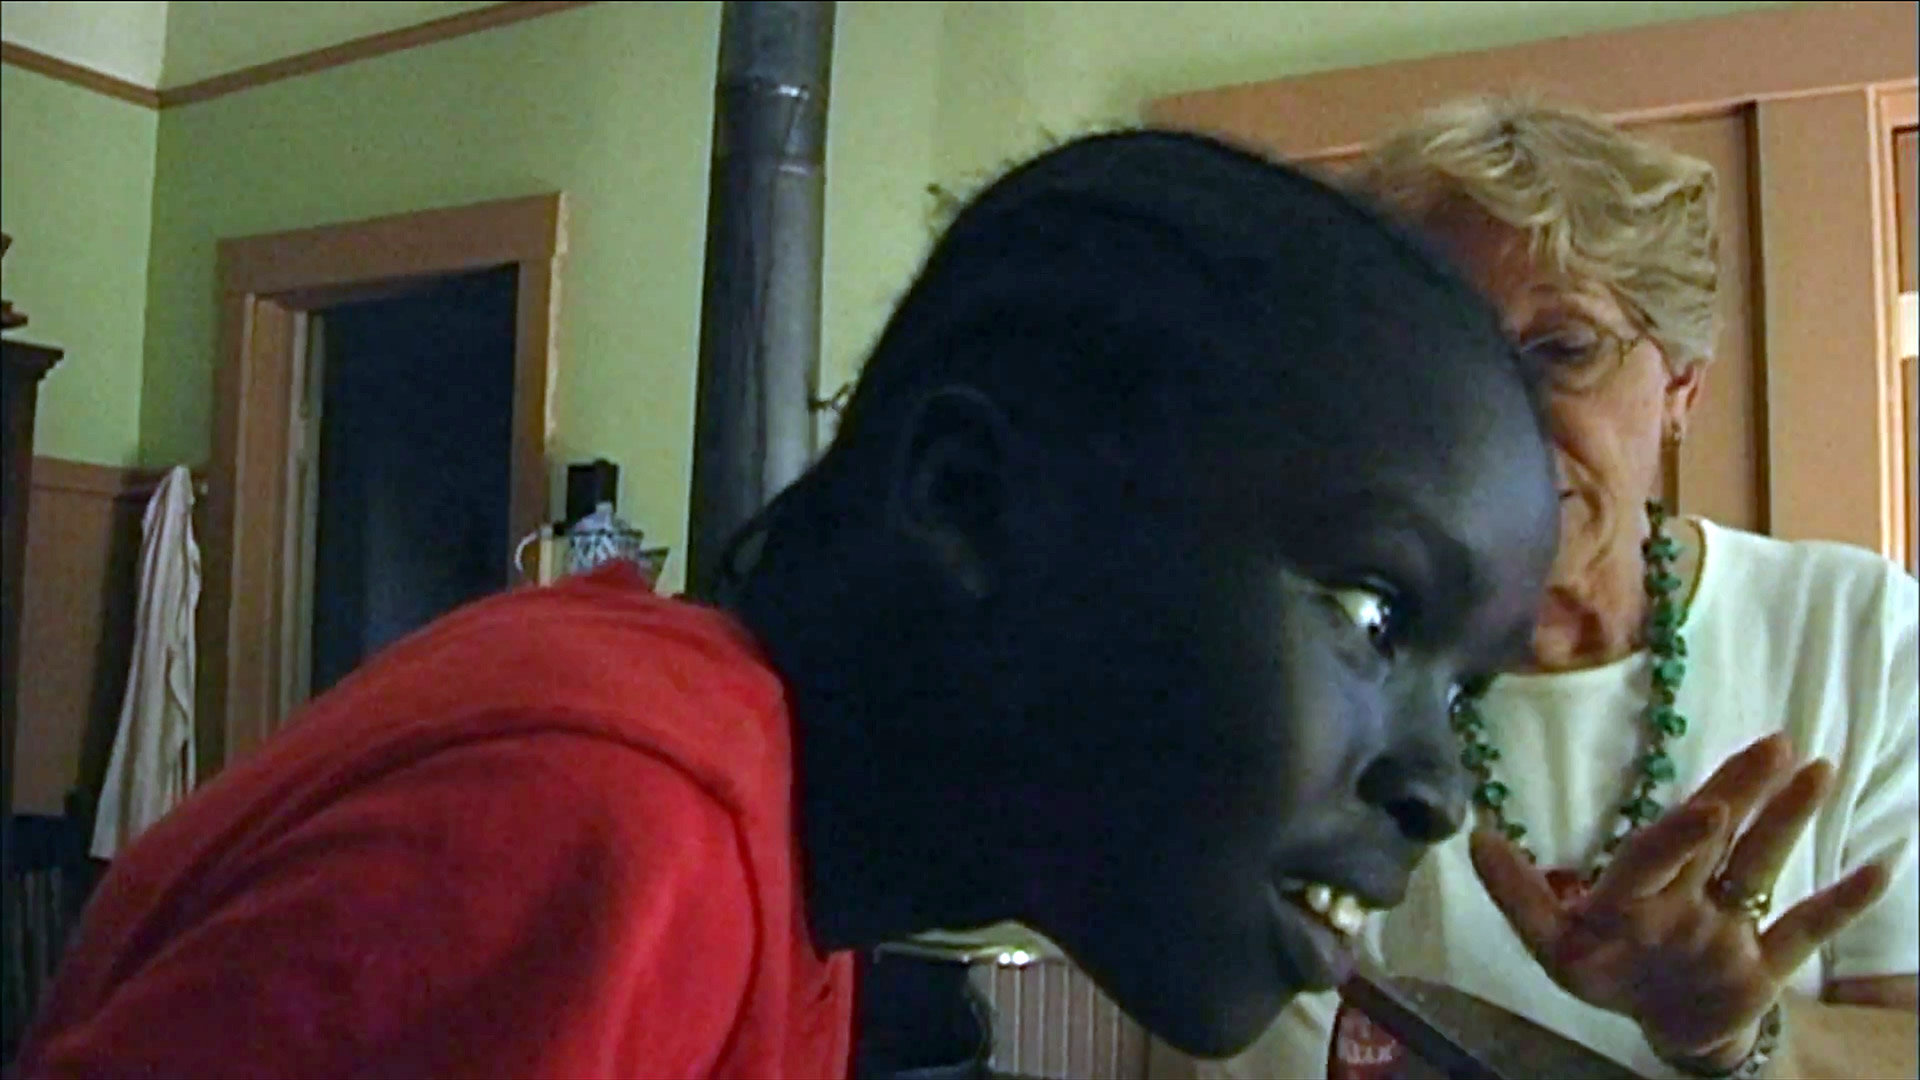 Chol listens to a hot iron sizzle. From the documentary The Quilted Conscience